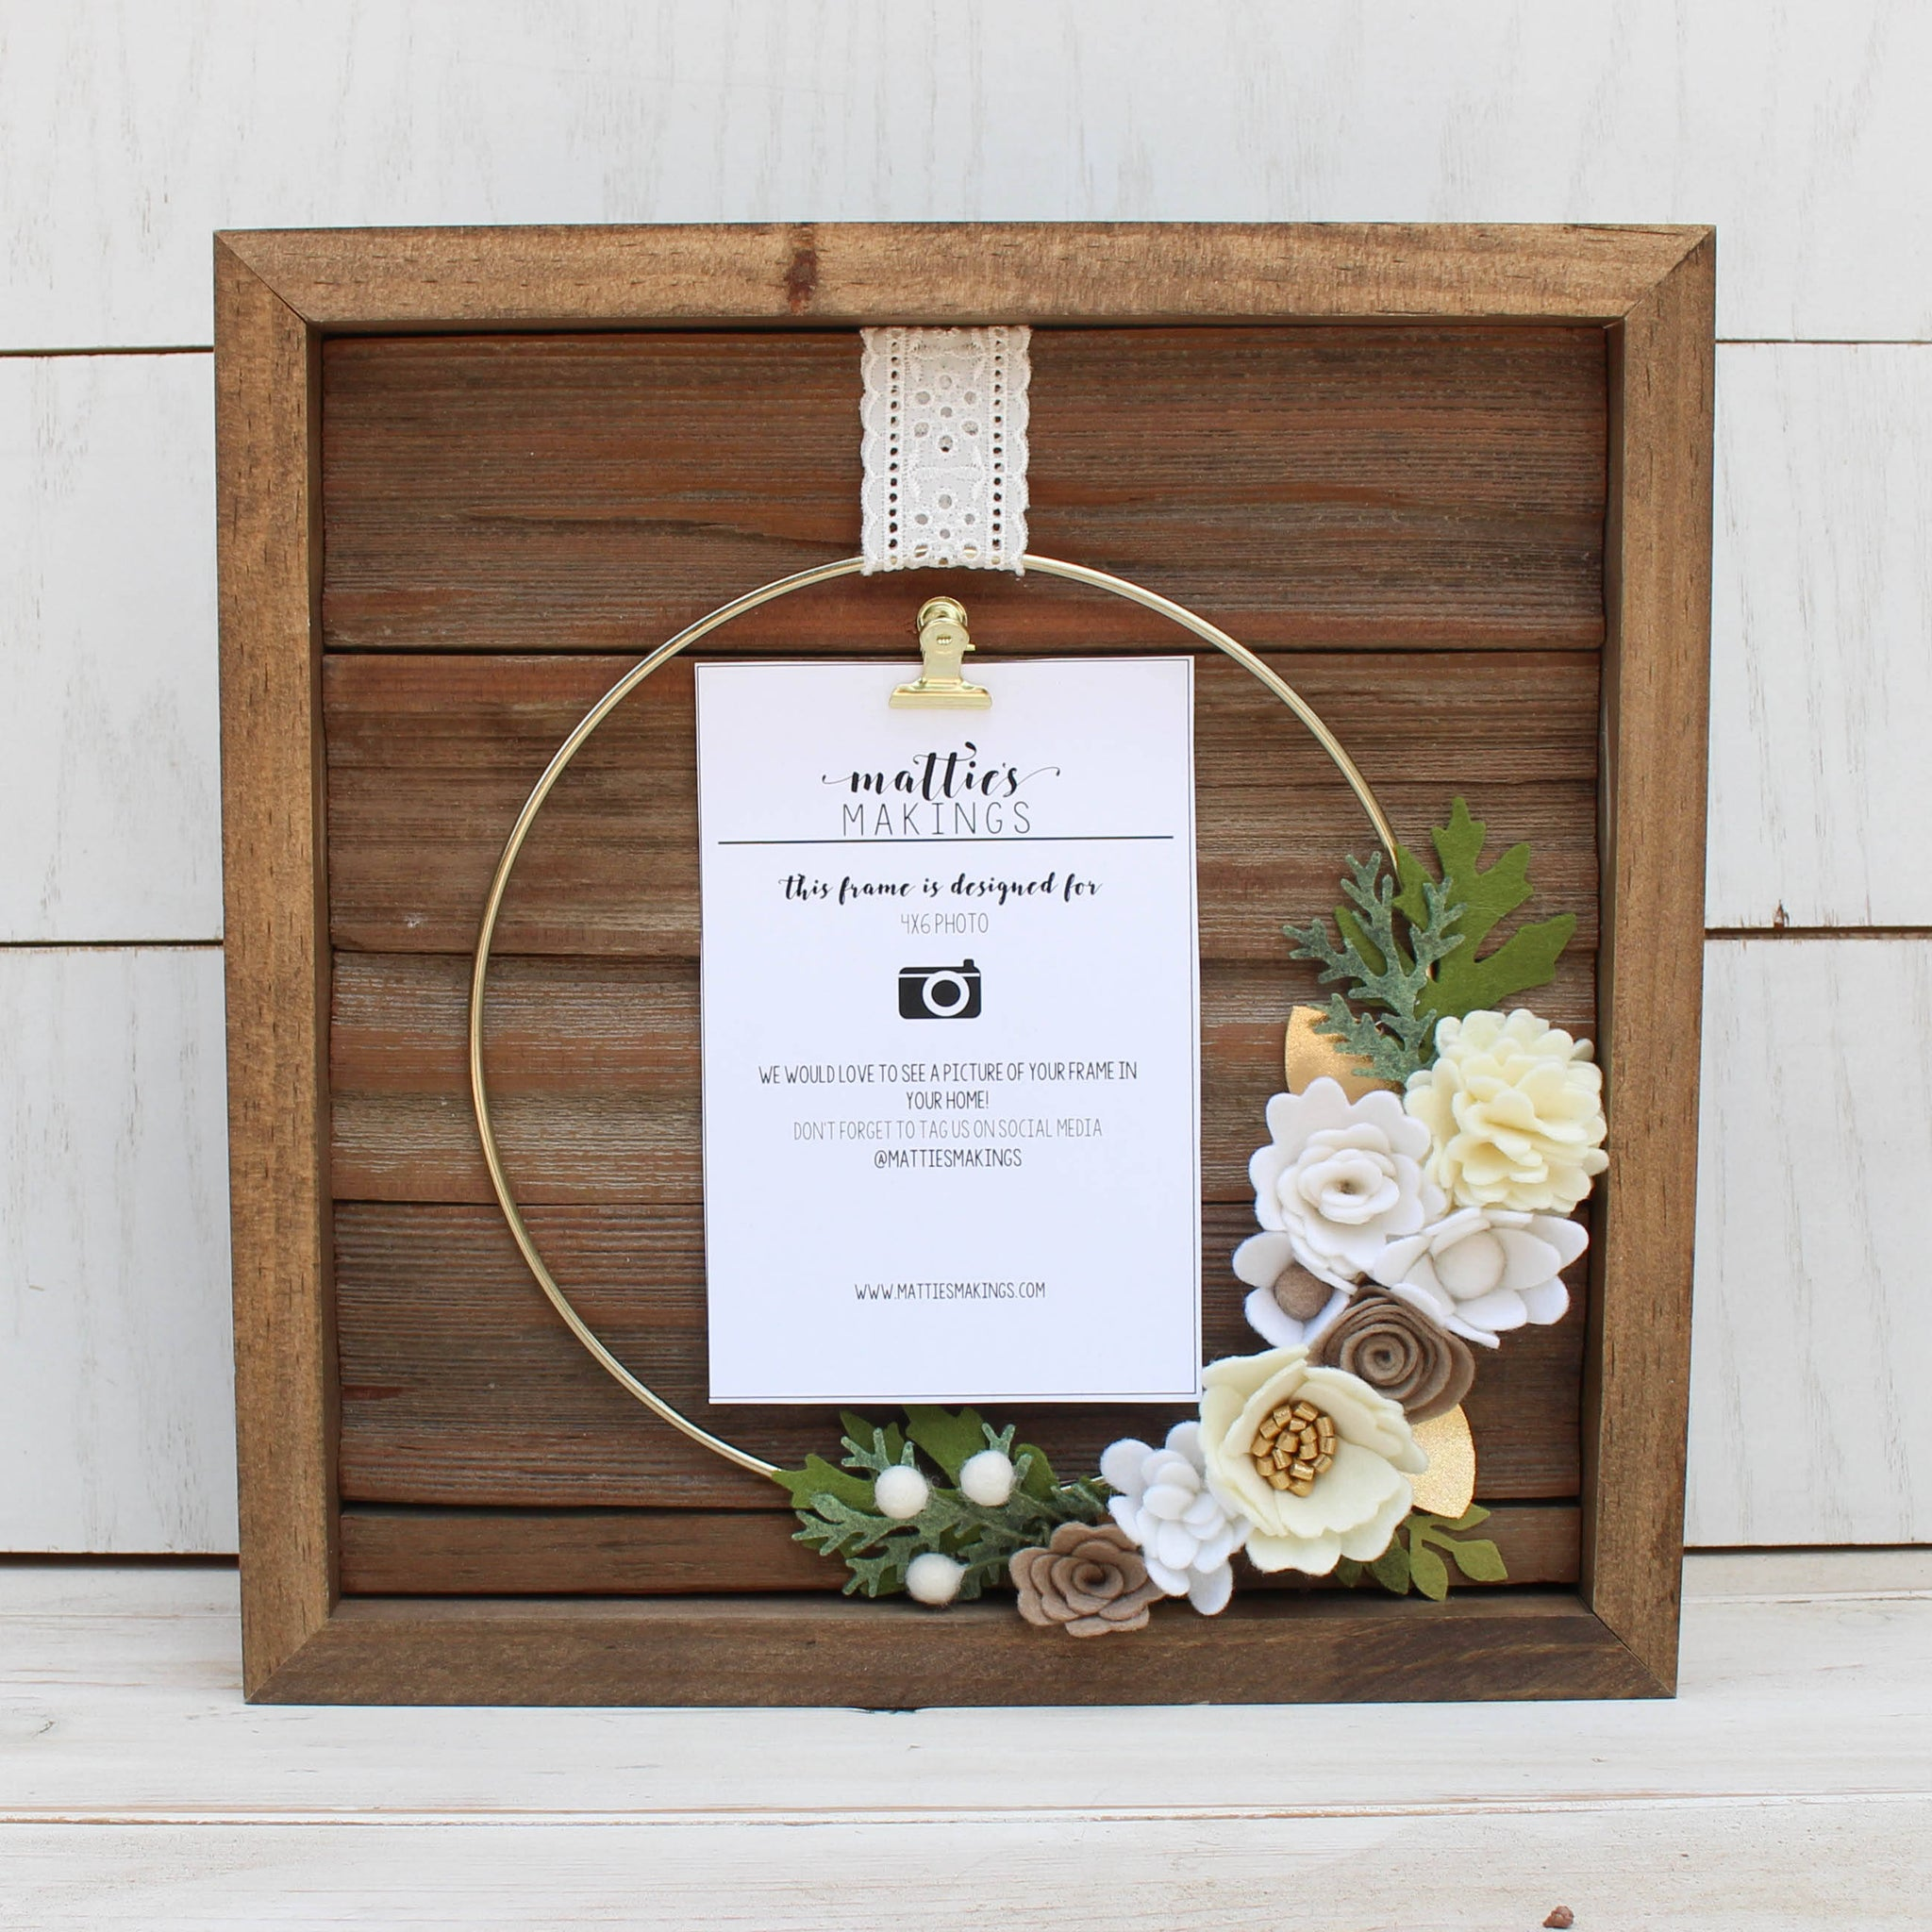 "Small Ring Floral Frame , 4x6 photo (11x11"" overall), modern wreath, felt flower wreath, nursery hoop art, picture frame, floral hoop art"